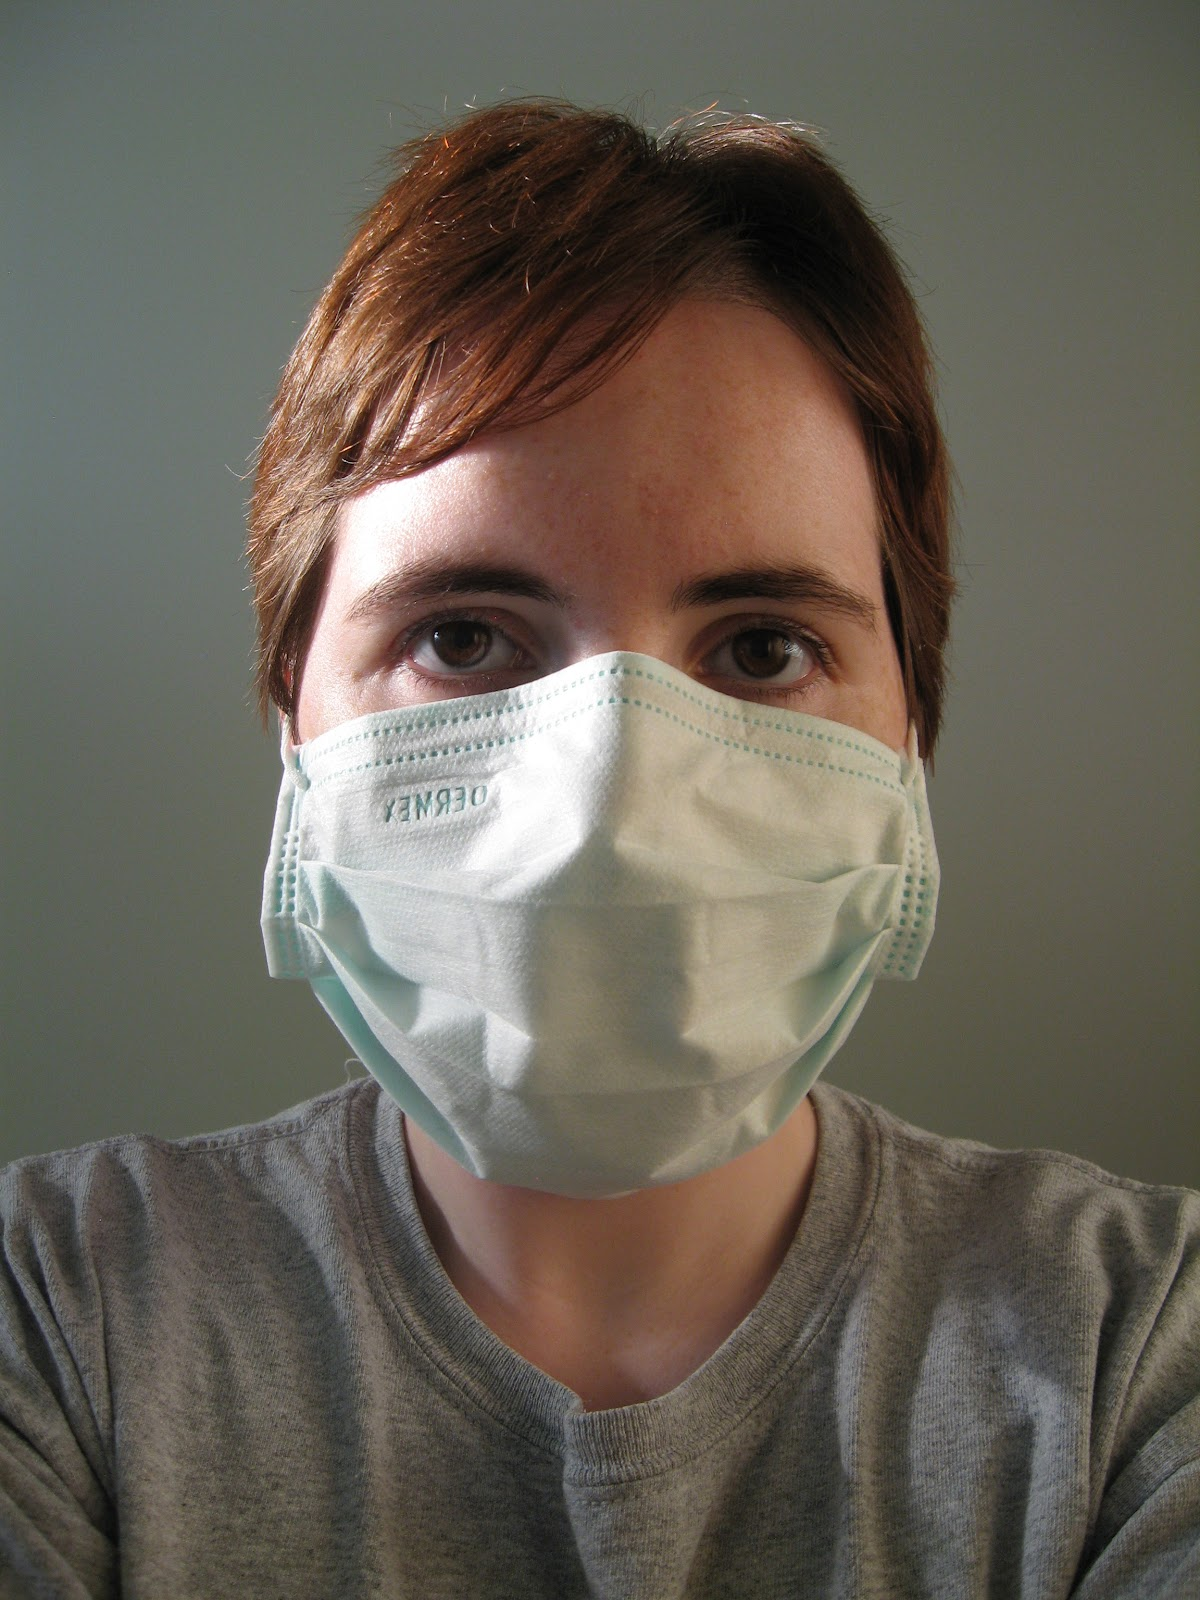 Styhat june 2012 this is me in the mask i wore for every dressing change my nurse had to wear one too sciox Choice Image